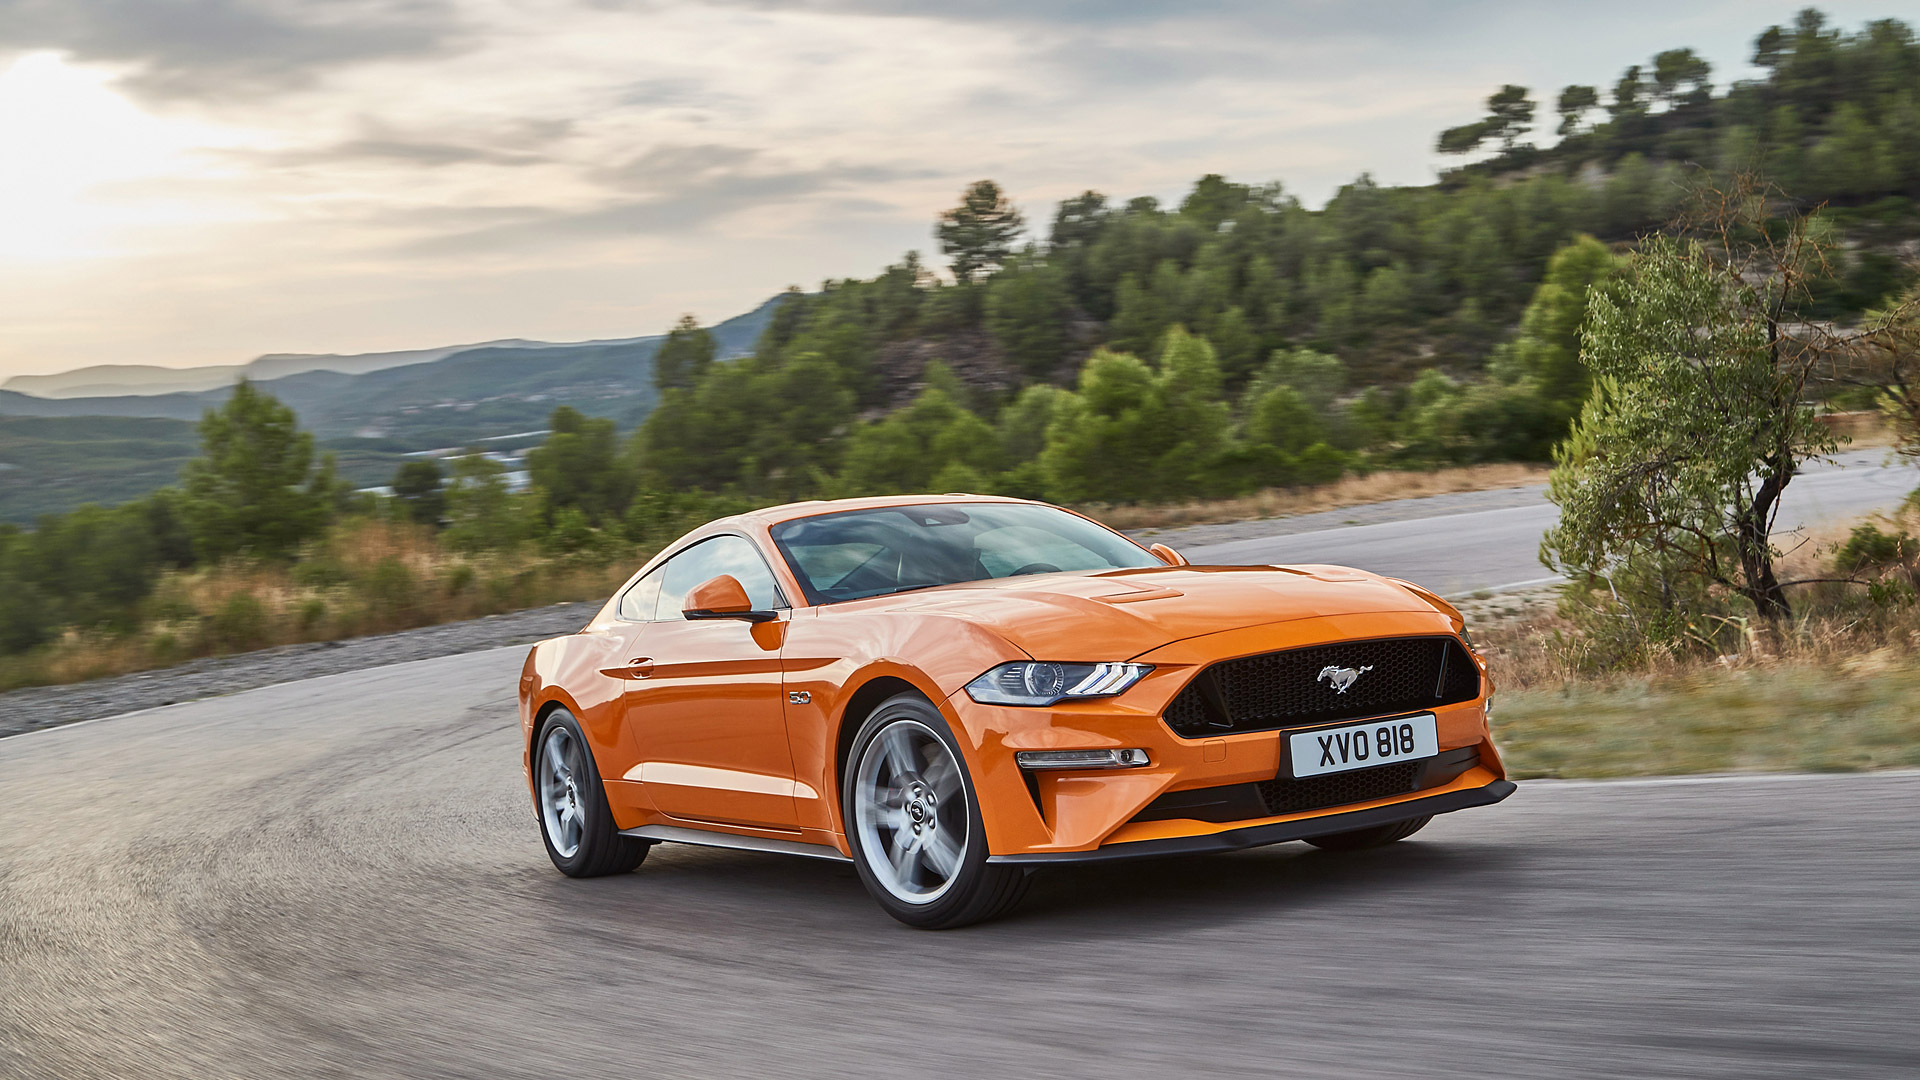 1920x1080 - Ford Mustang GT Wallpapers 18